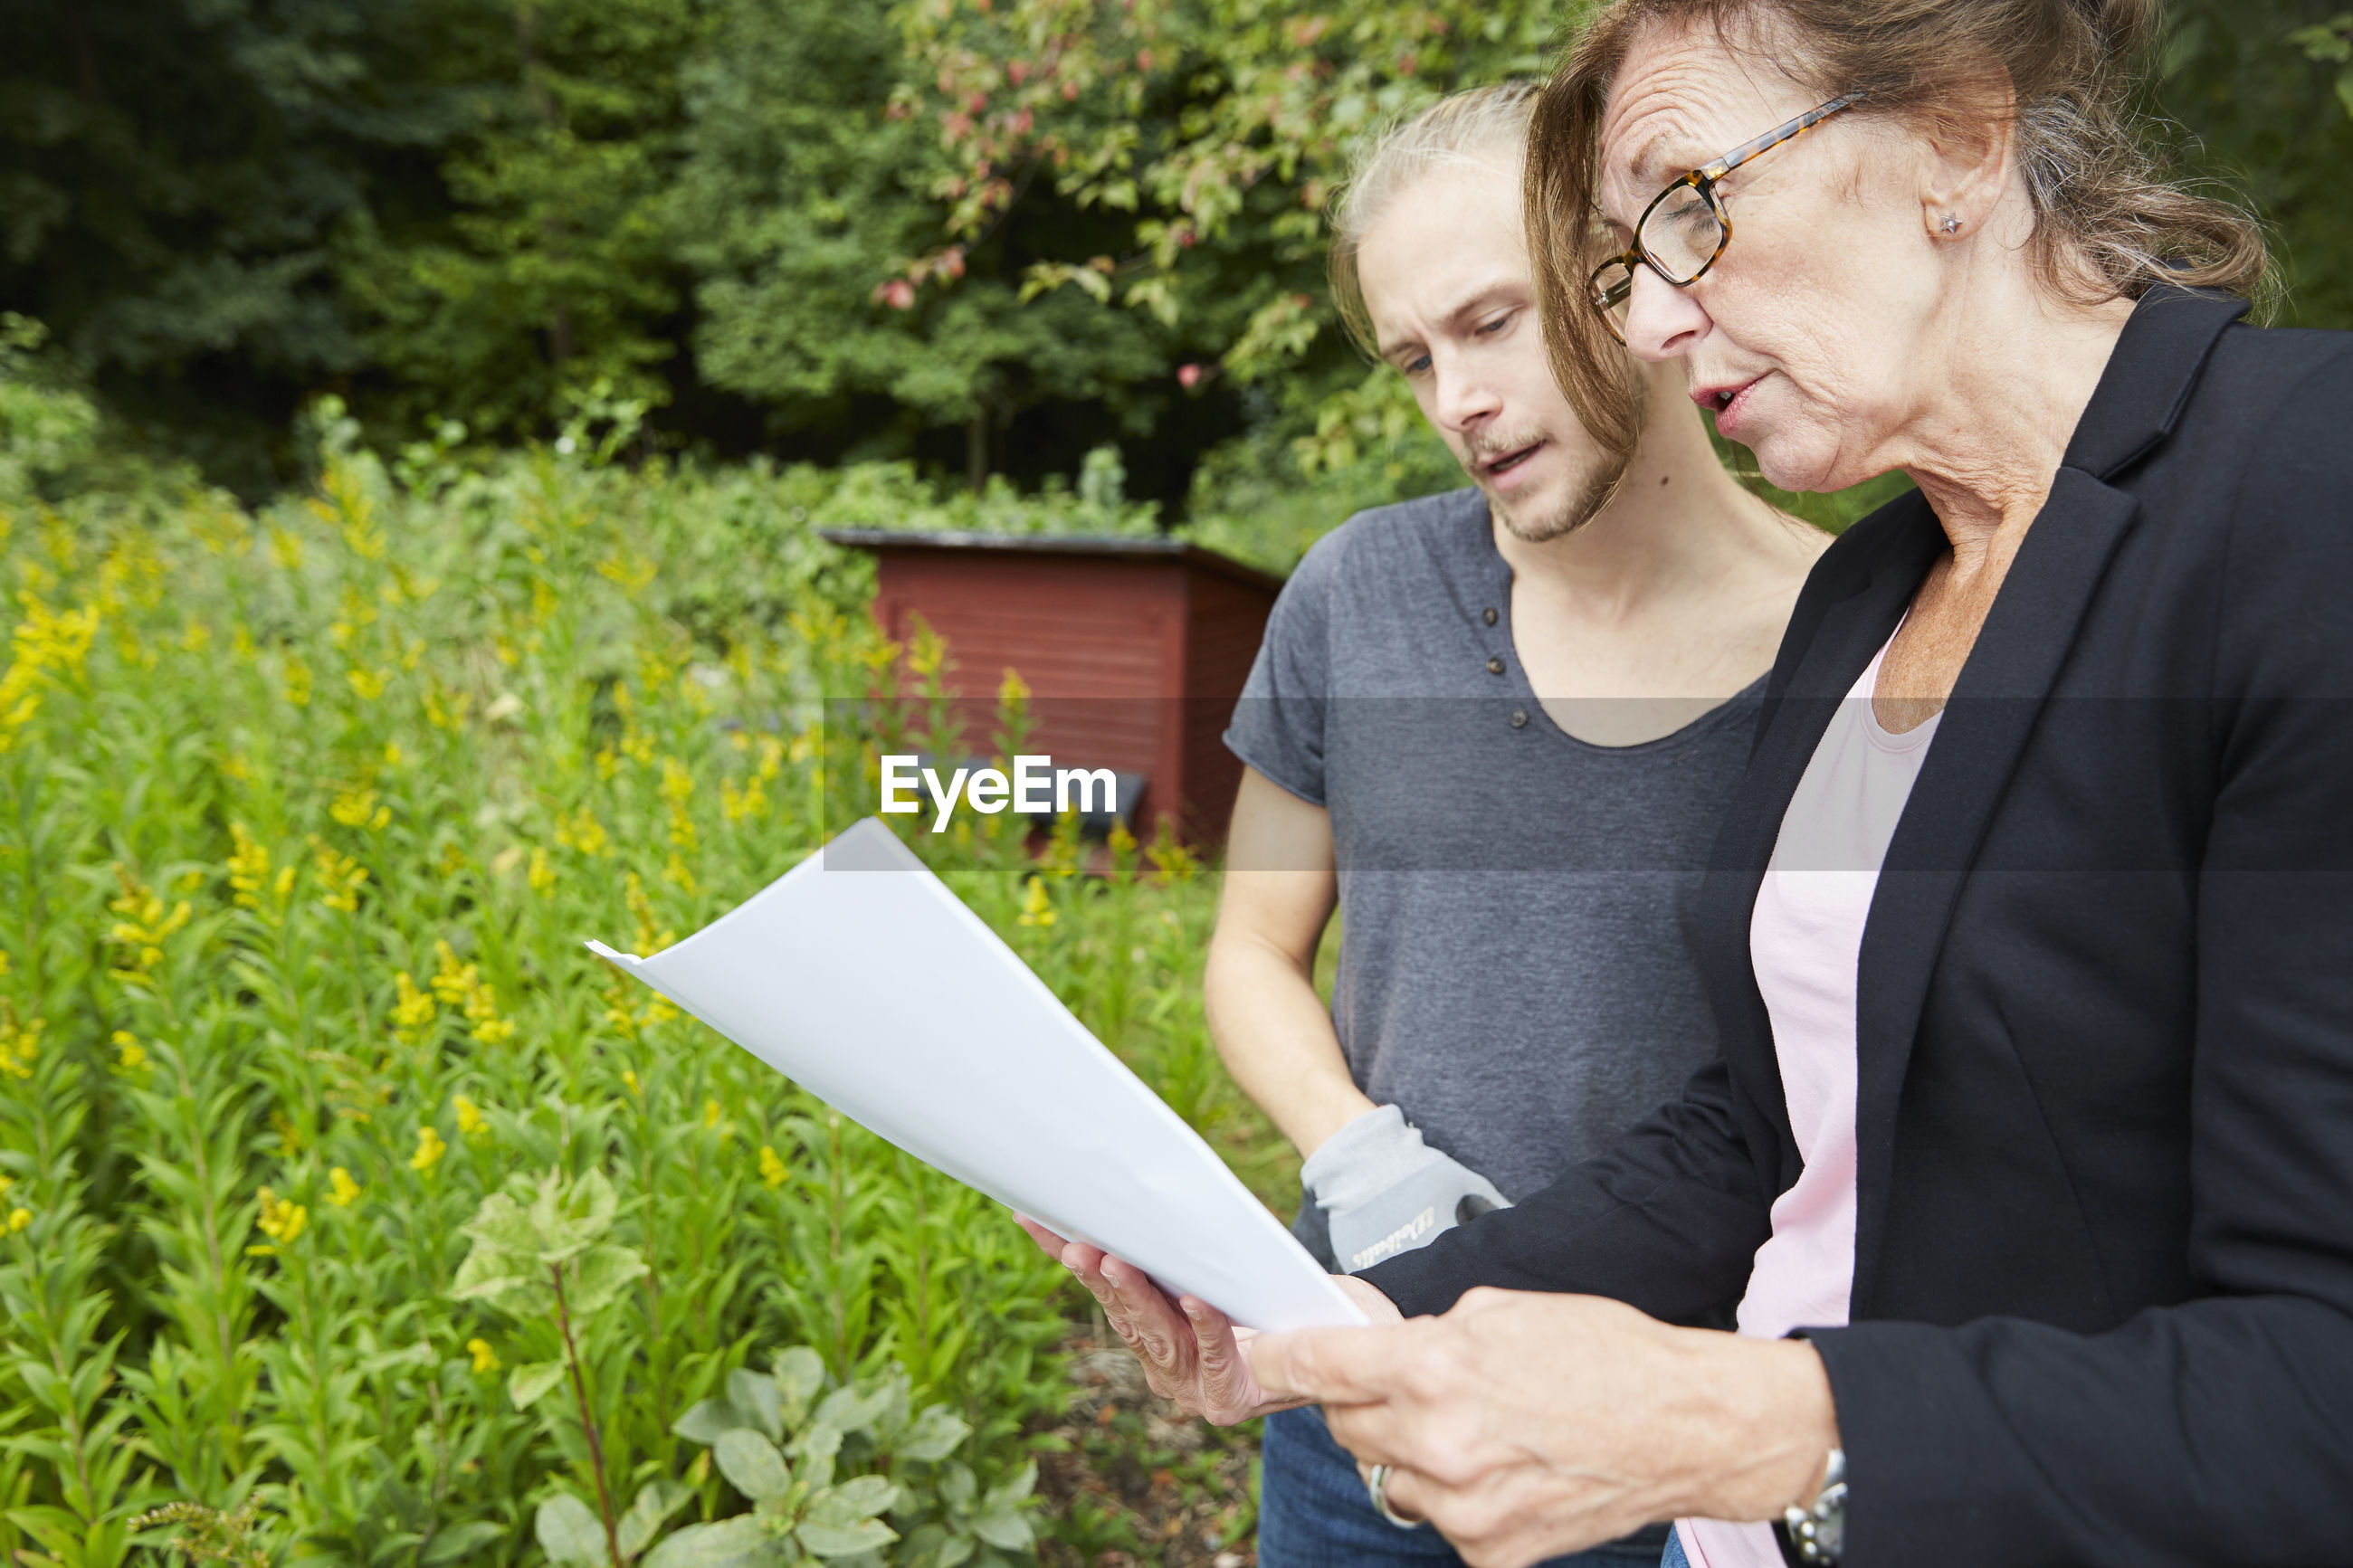 MIDSECTION OF MAN HOLDING WOMAN STANDING ON PLANTS